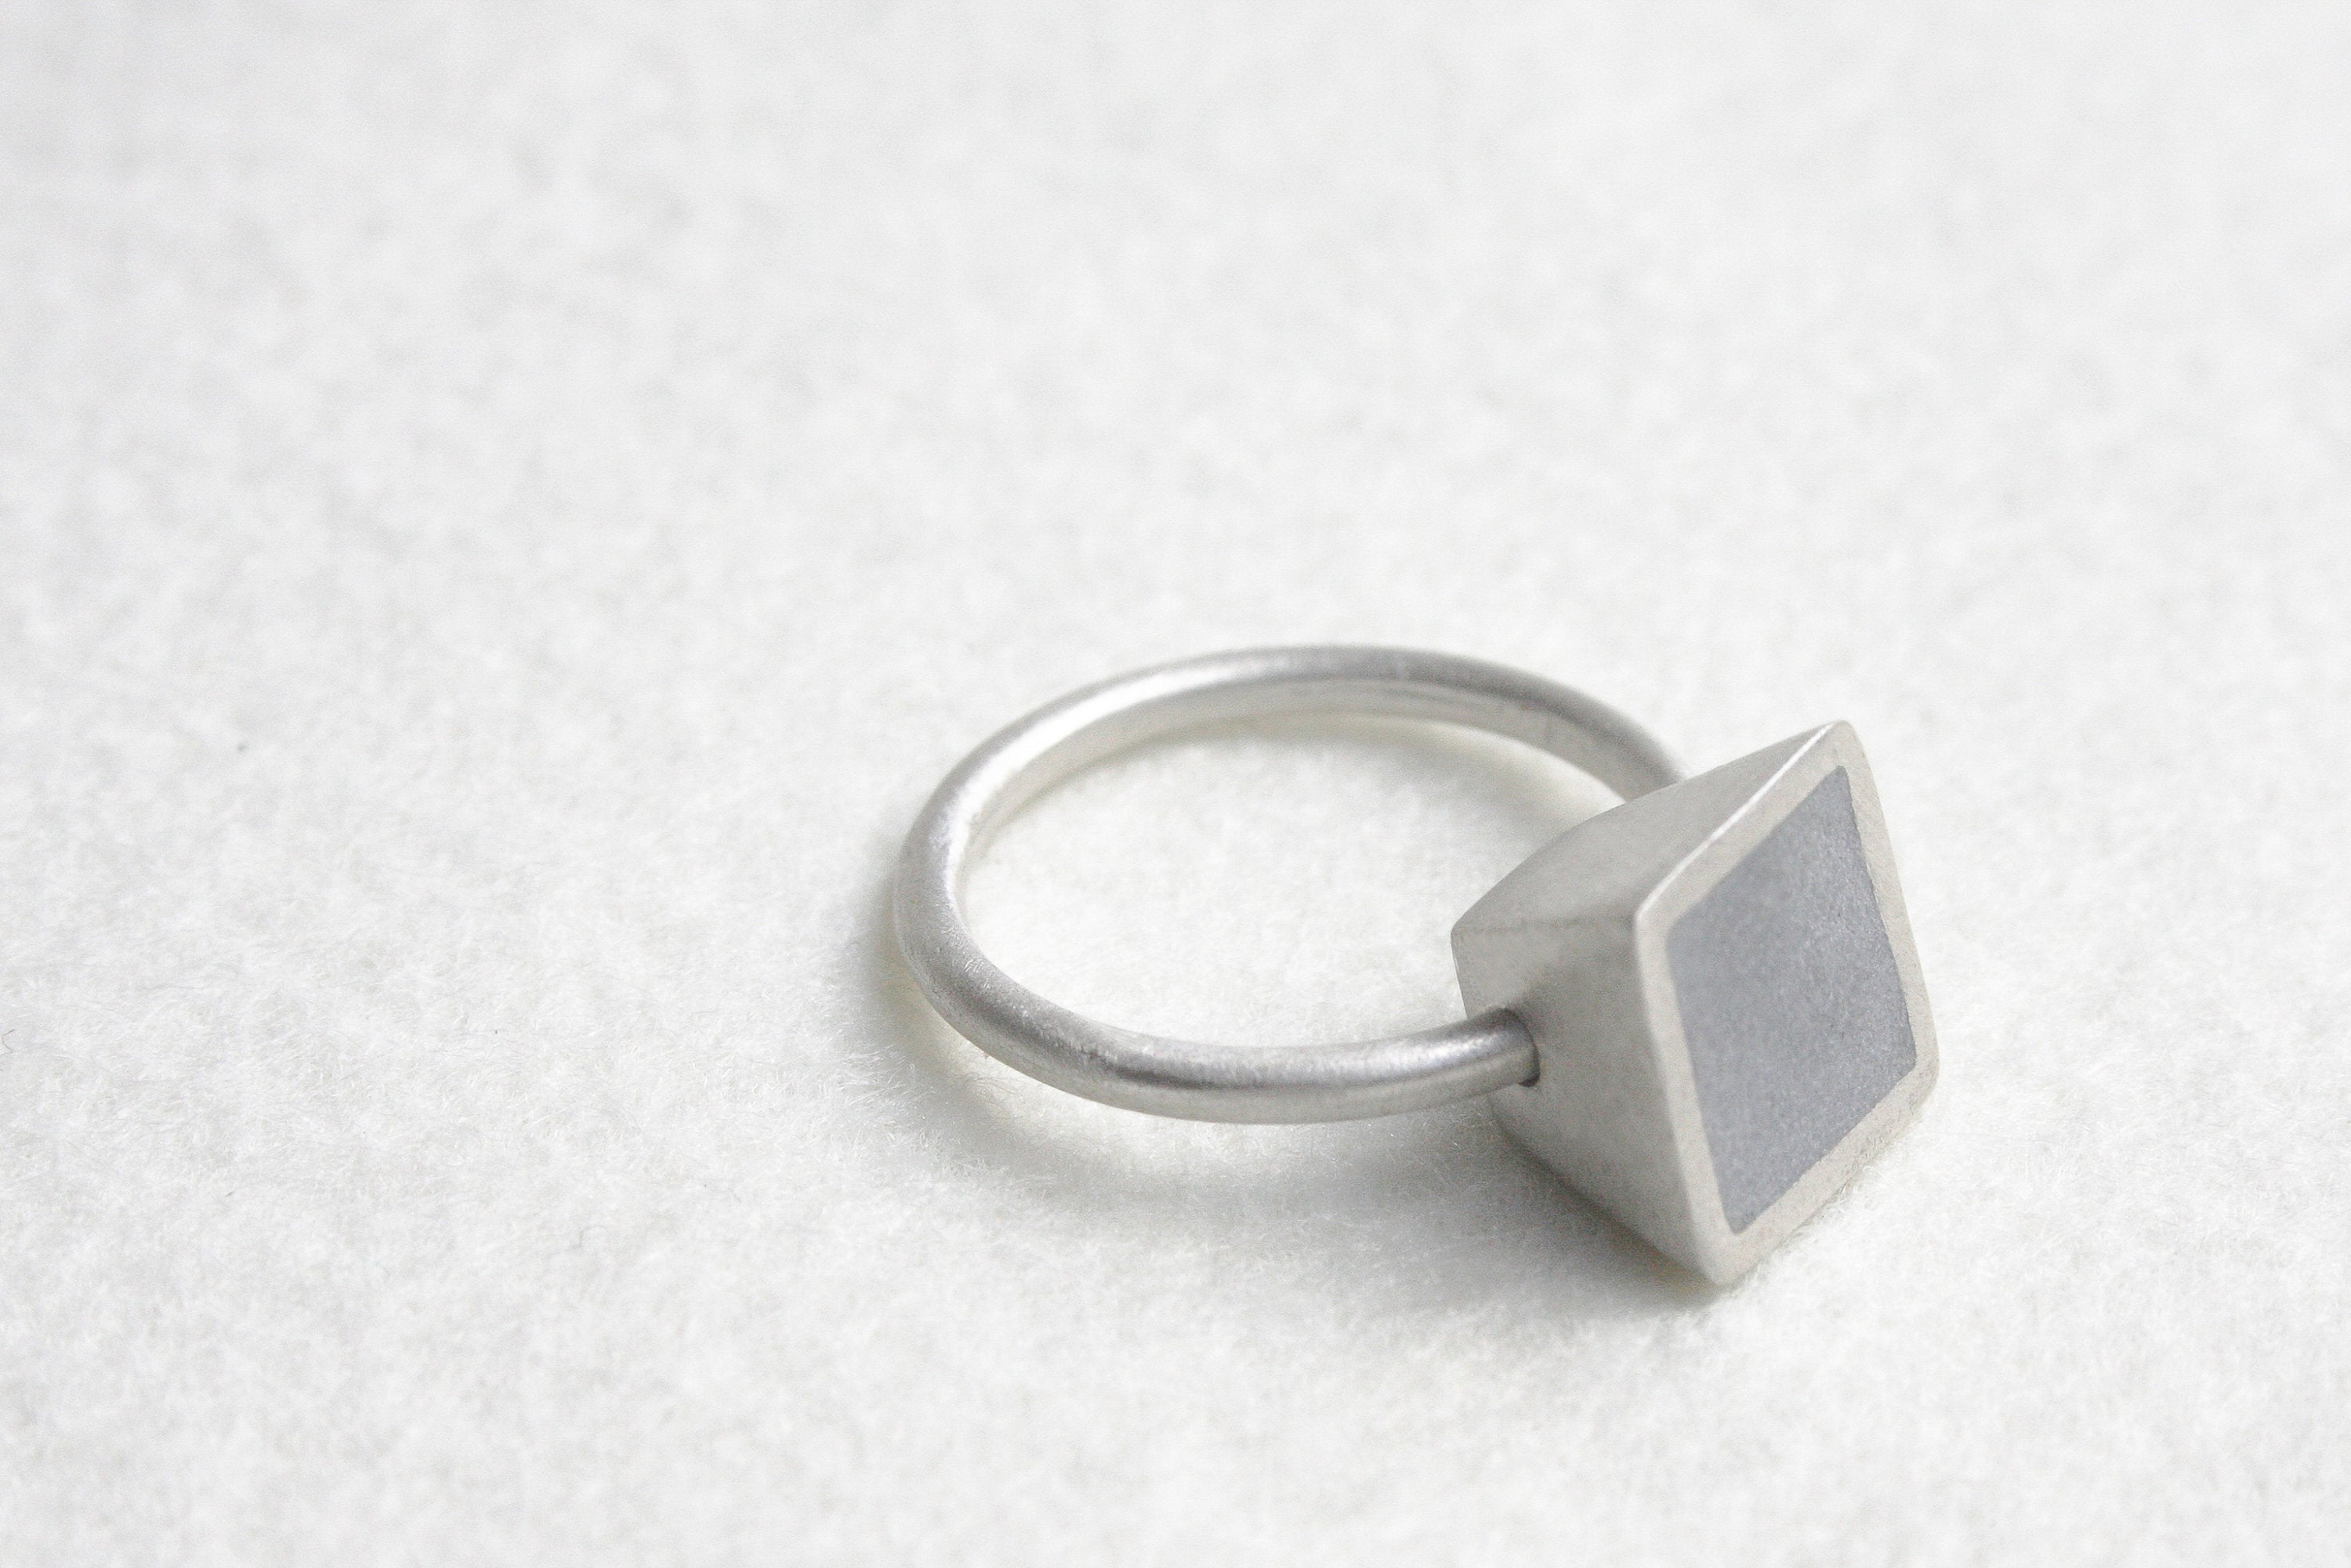 Square Cone Shape Silver Concrete Ring Design By Hadas Shaham - hs